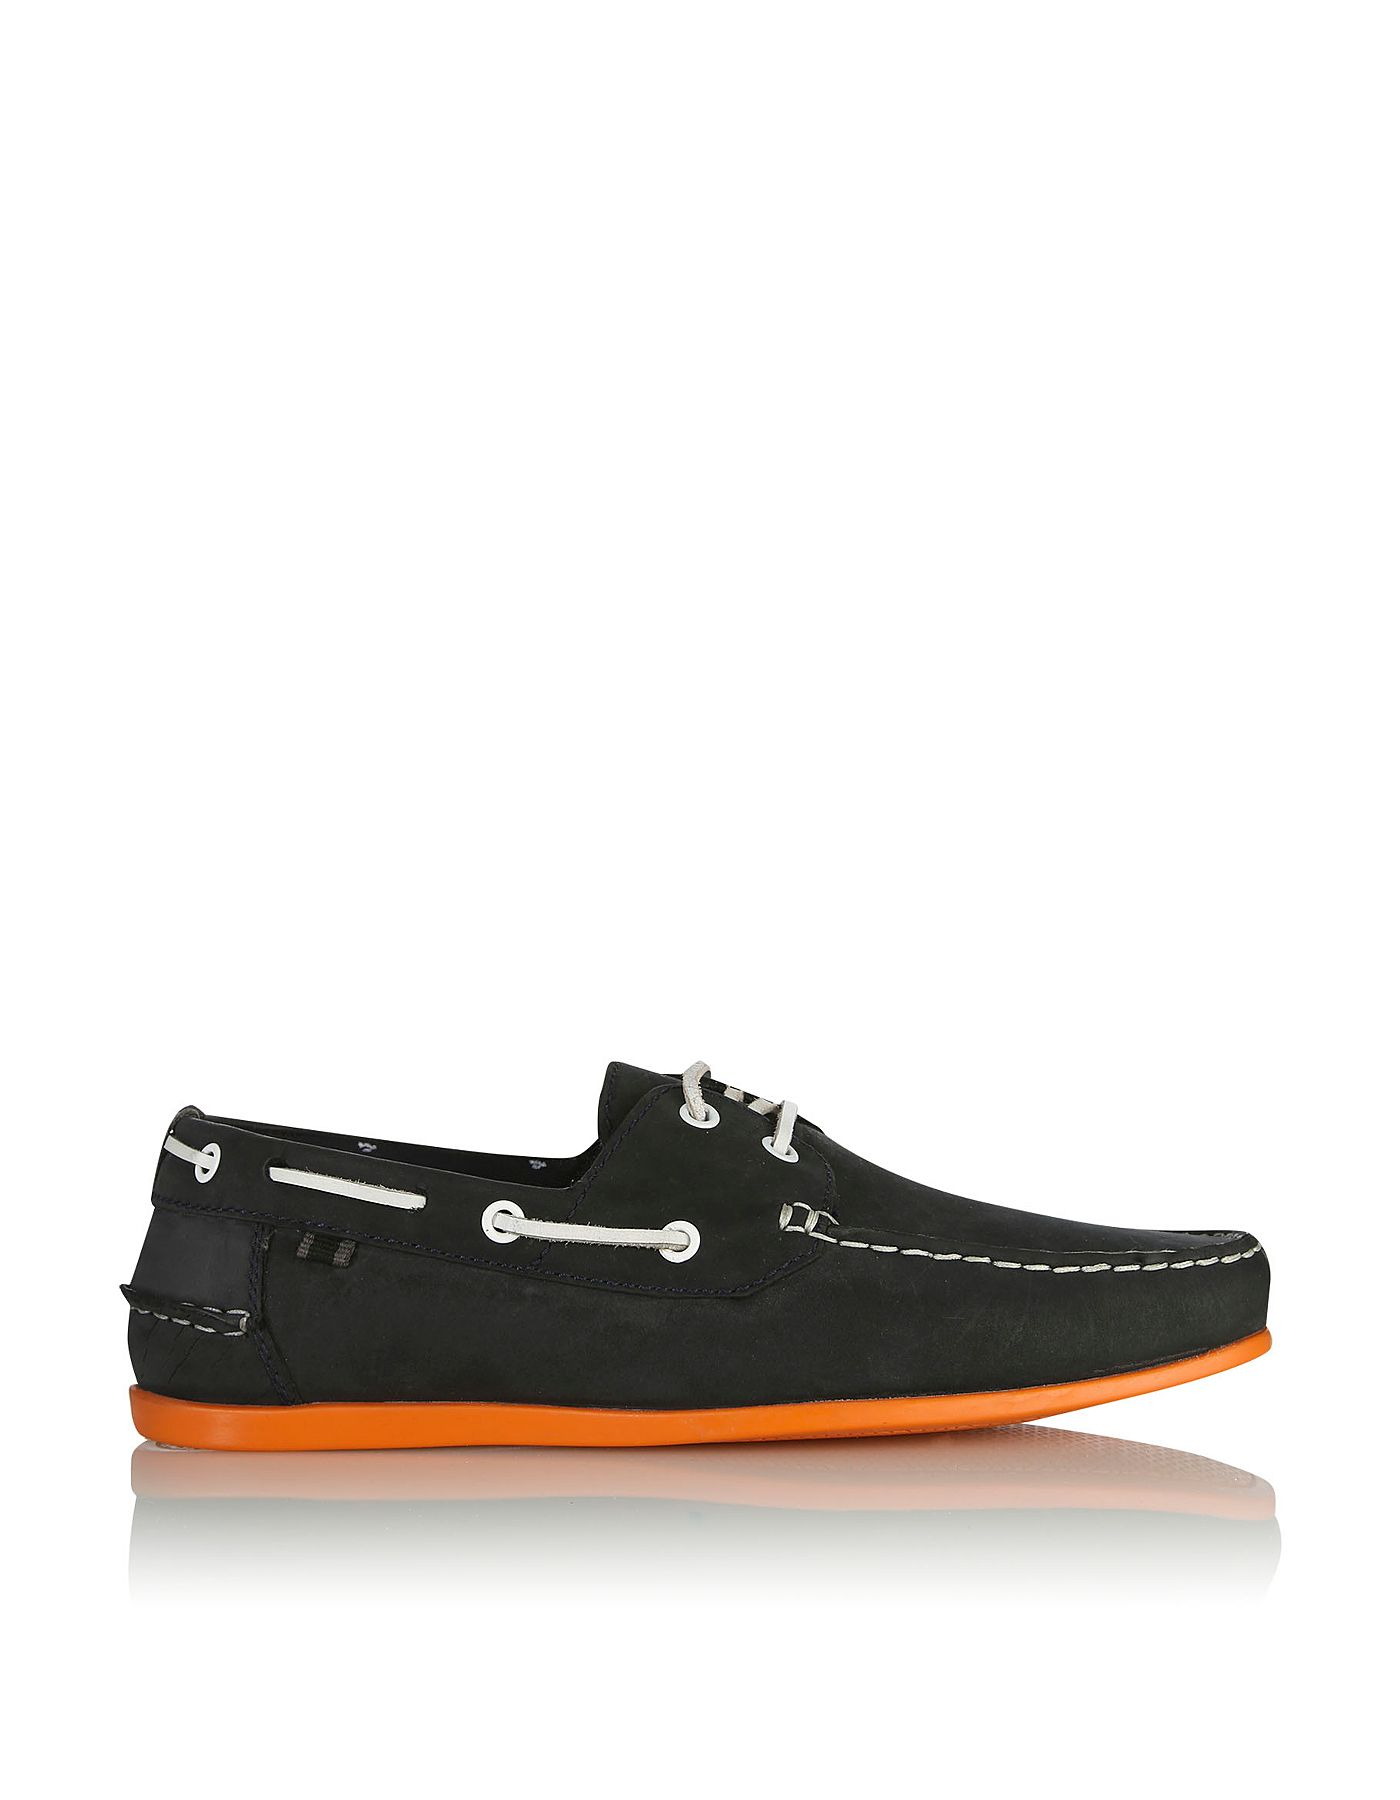 3538f5da312fa Leather Boat Shoes | Men | George at ASDA | MenFashion Shoes in 2019 ...